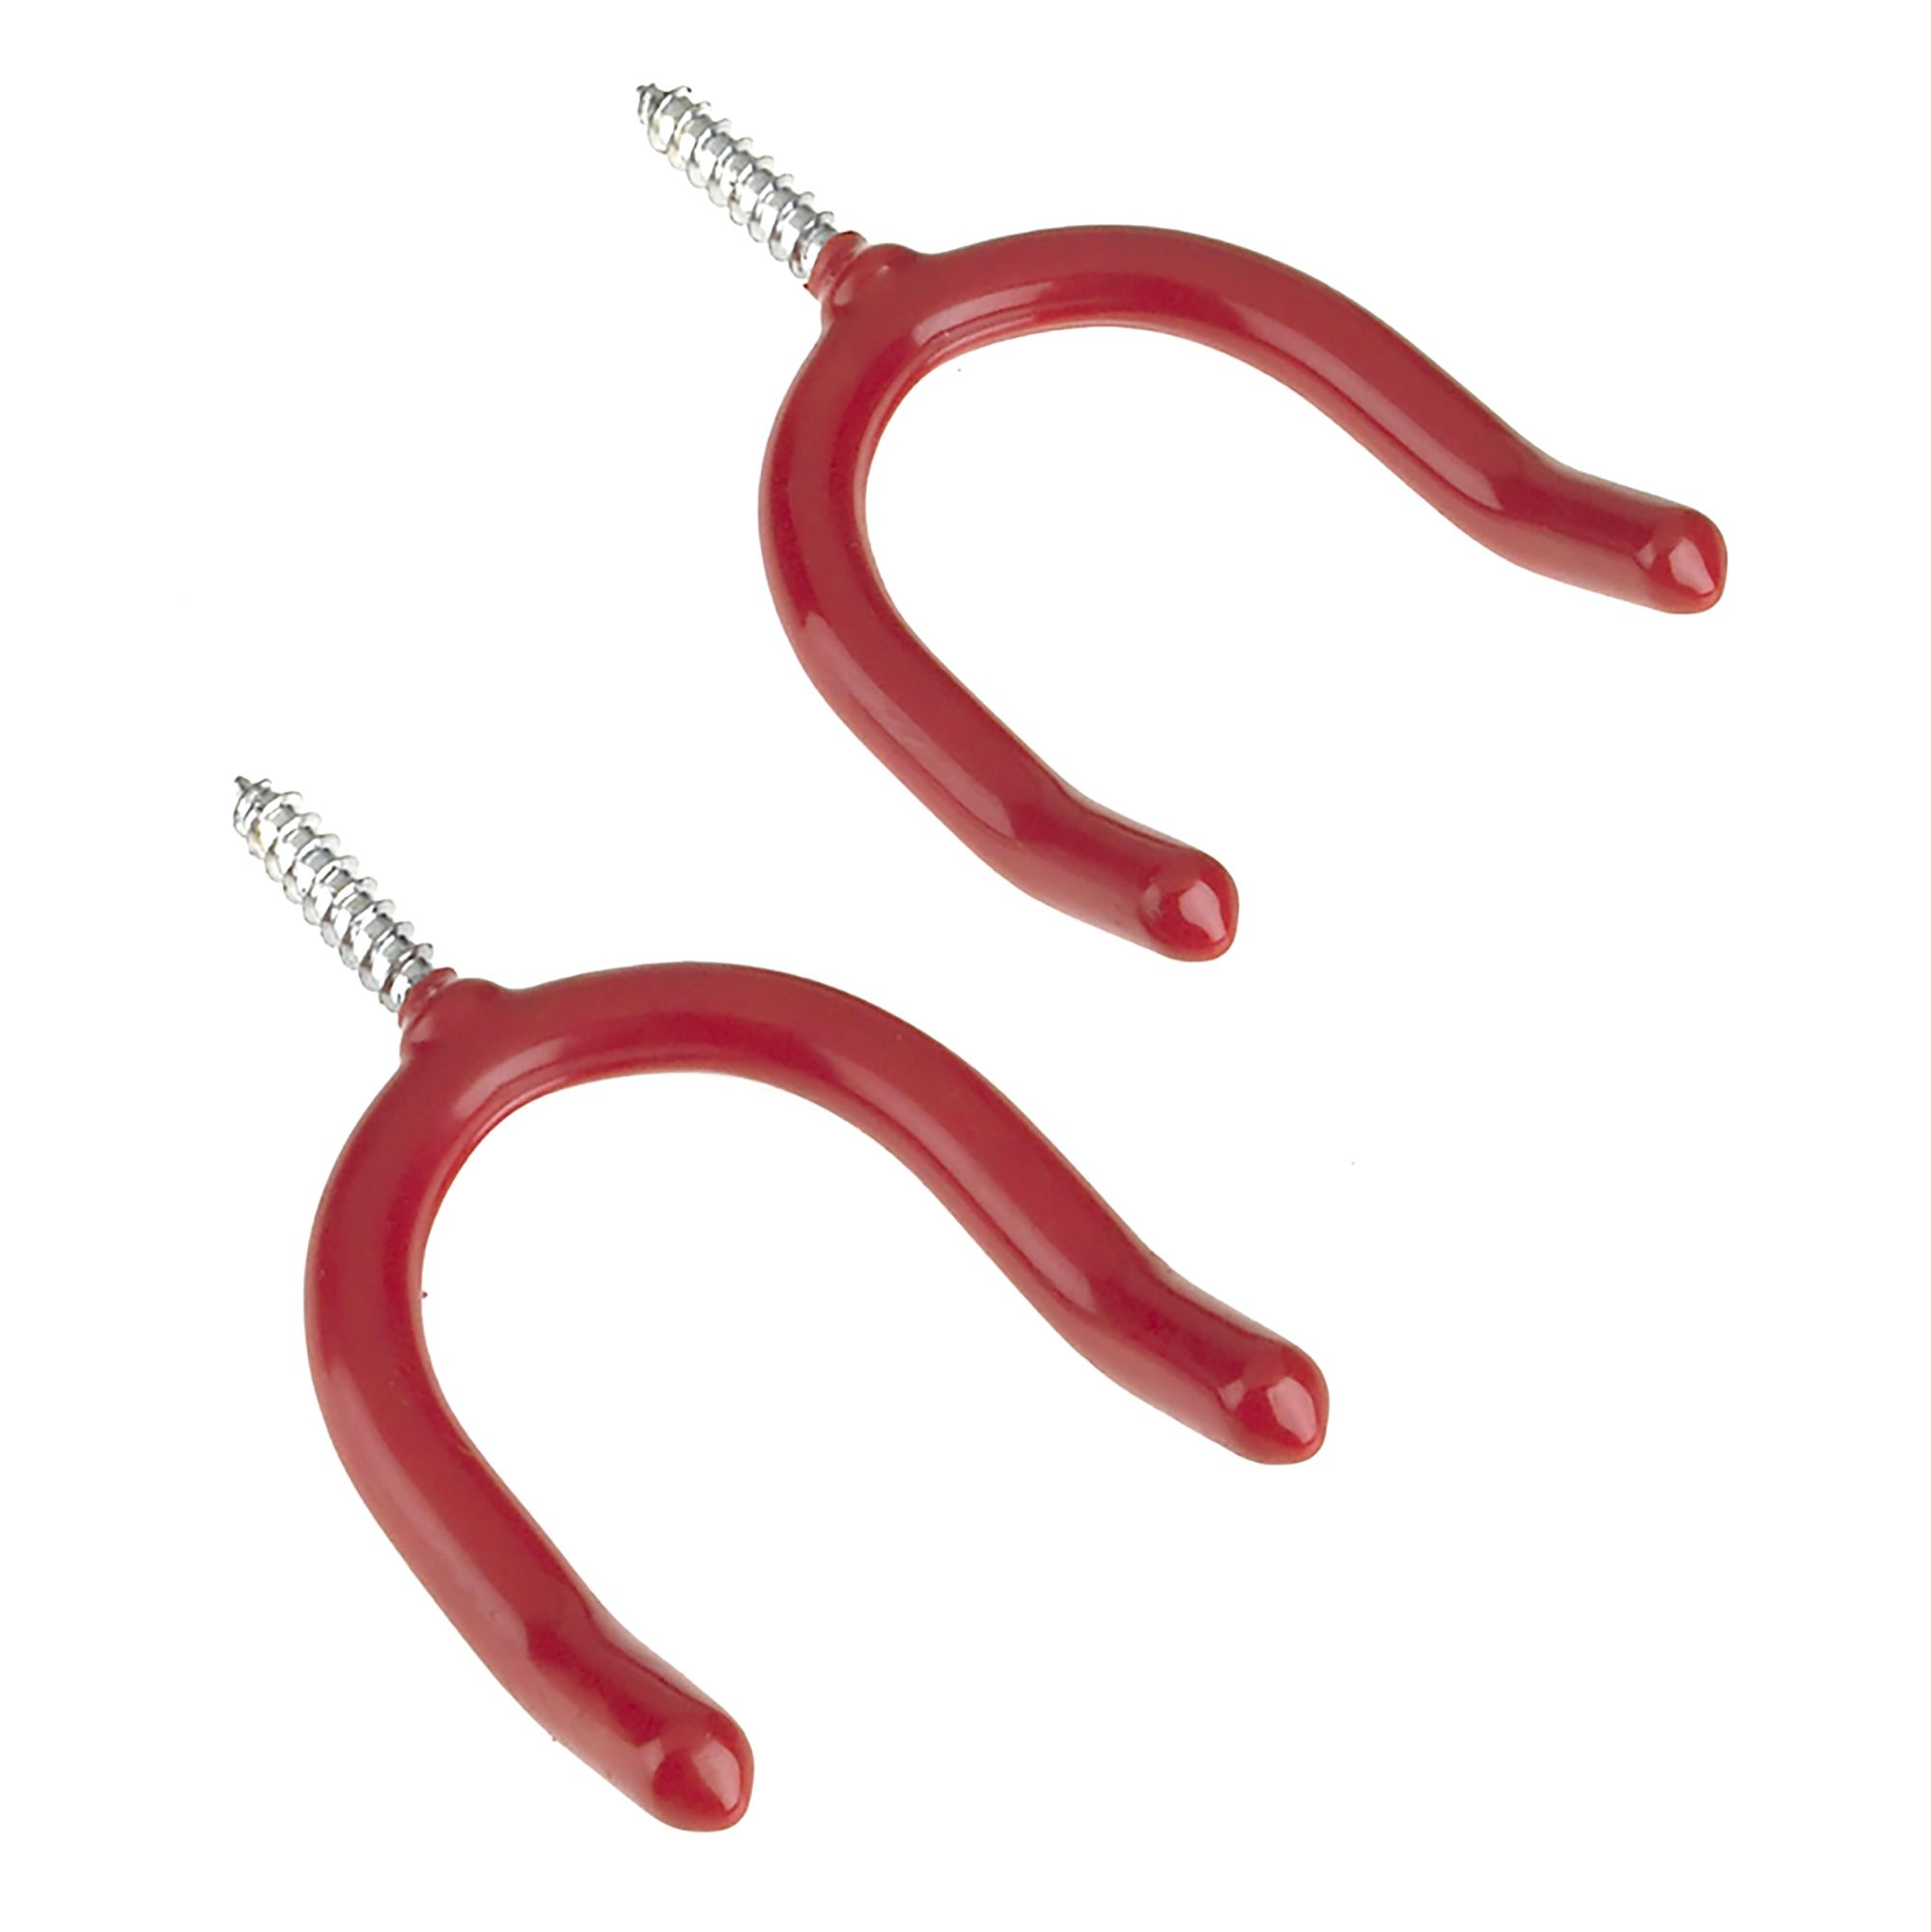 Rothley Red Steel Tool Storage Hooks Pack Of 2 Departments Diy At B Q